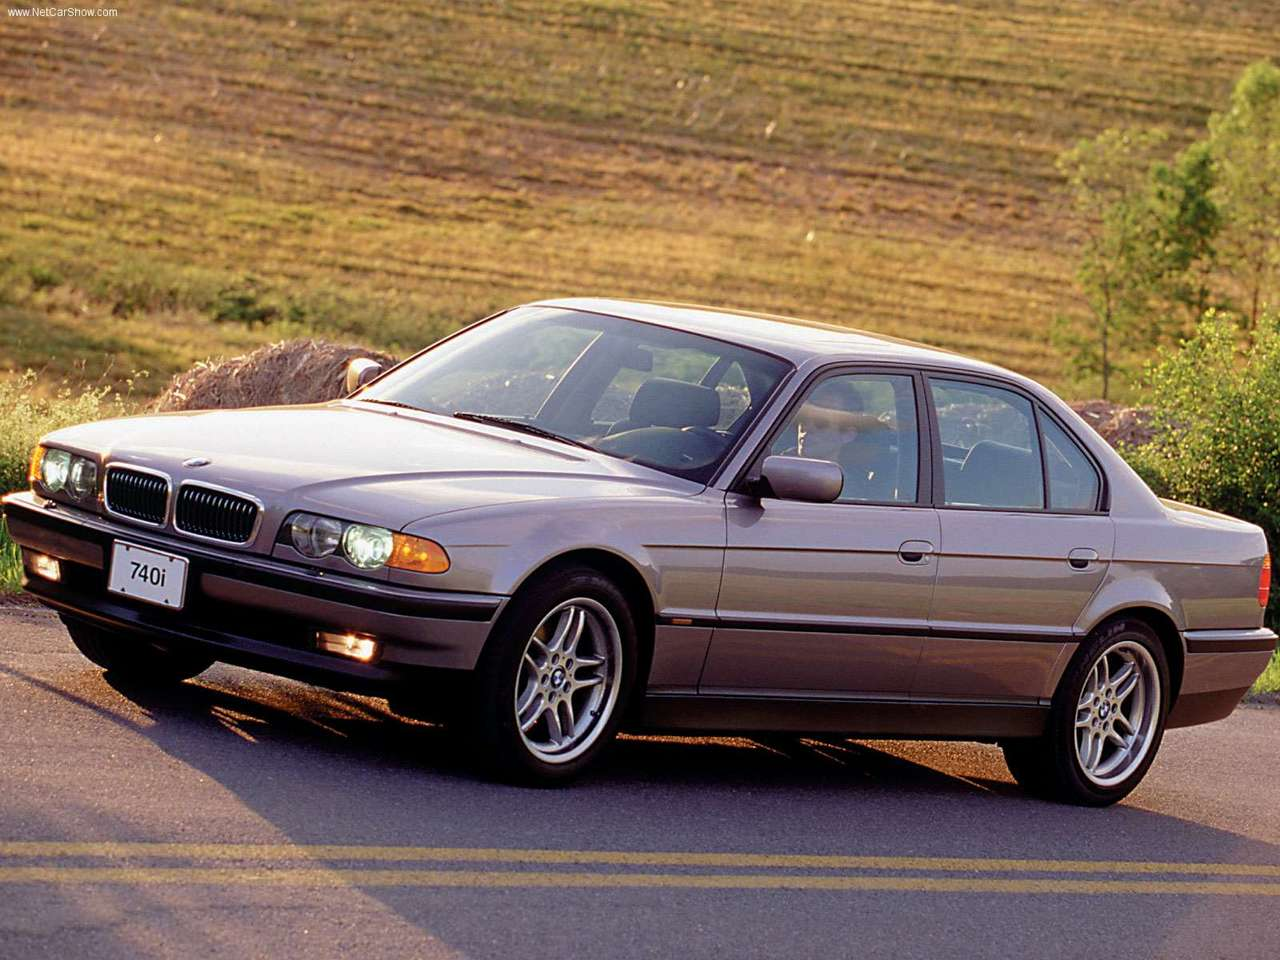 medium resolution of 2000 bmw 740i the e38 generation 1995 2001 had a five speed automatic or manual transmission the engine variants in europe were 725tds 728i 730i